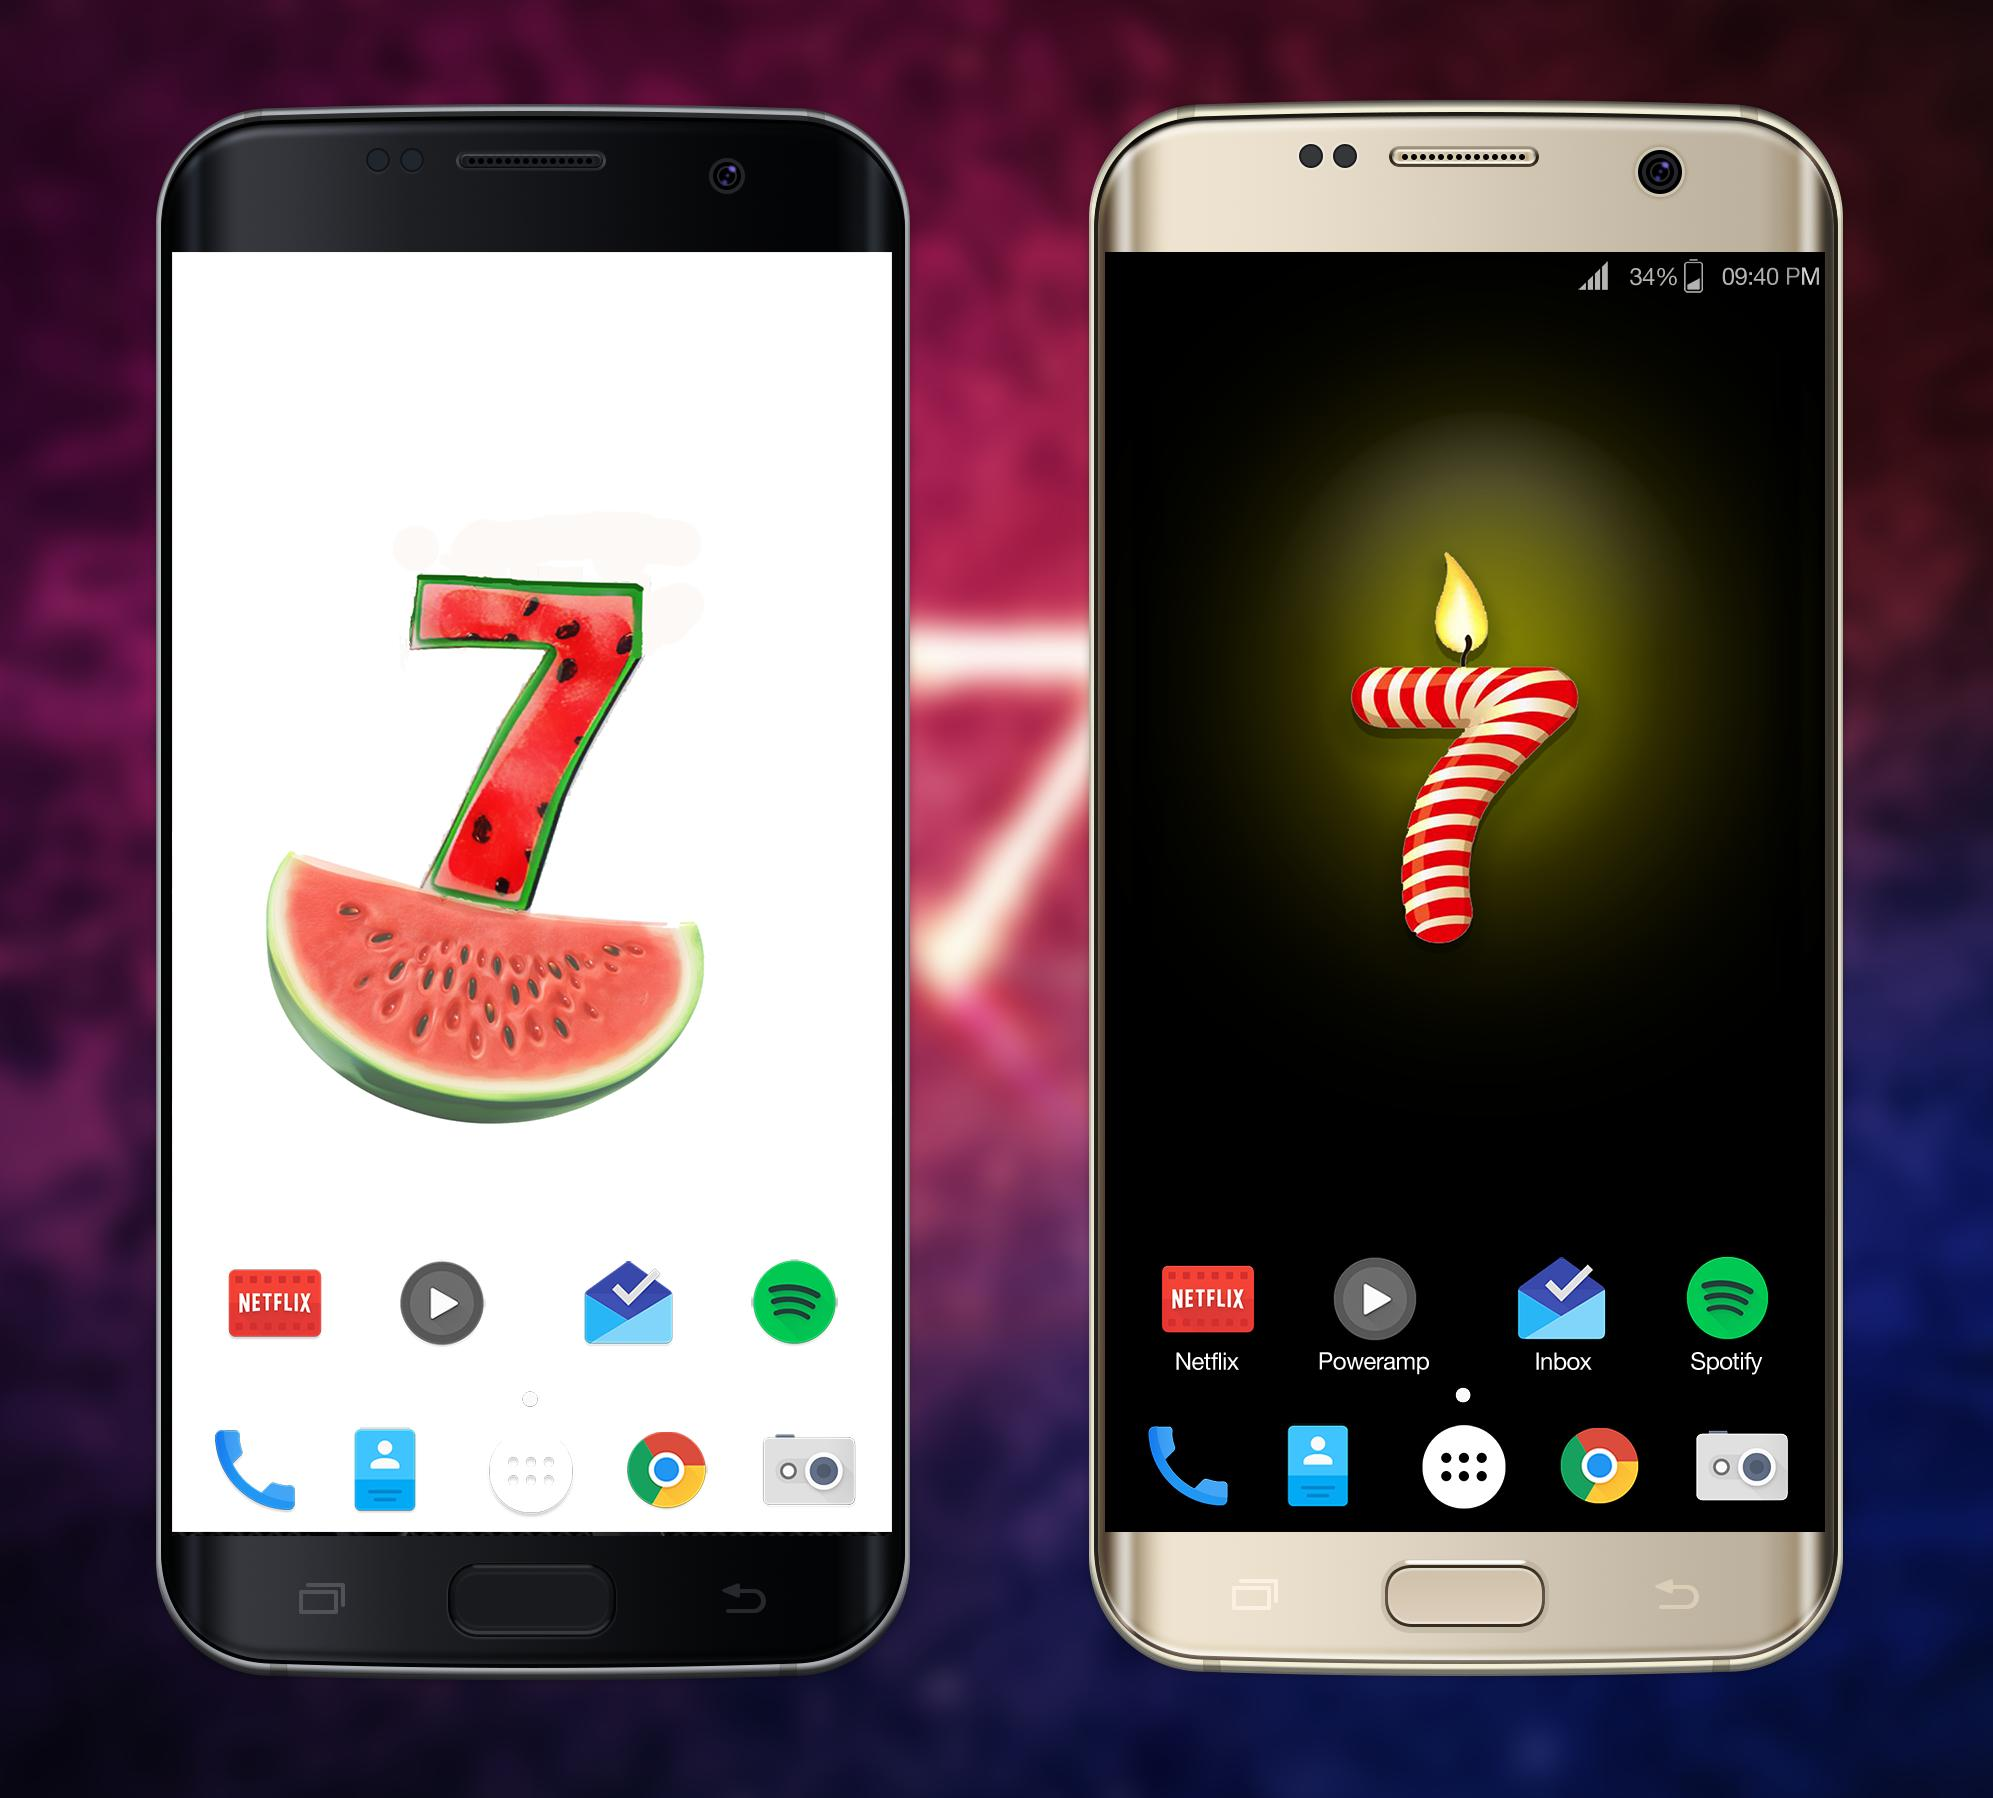 Number 7 Wallpaper Hd For Android Apk Download